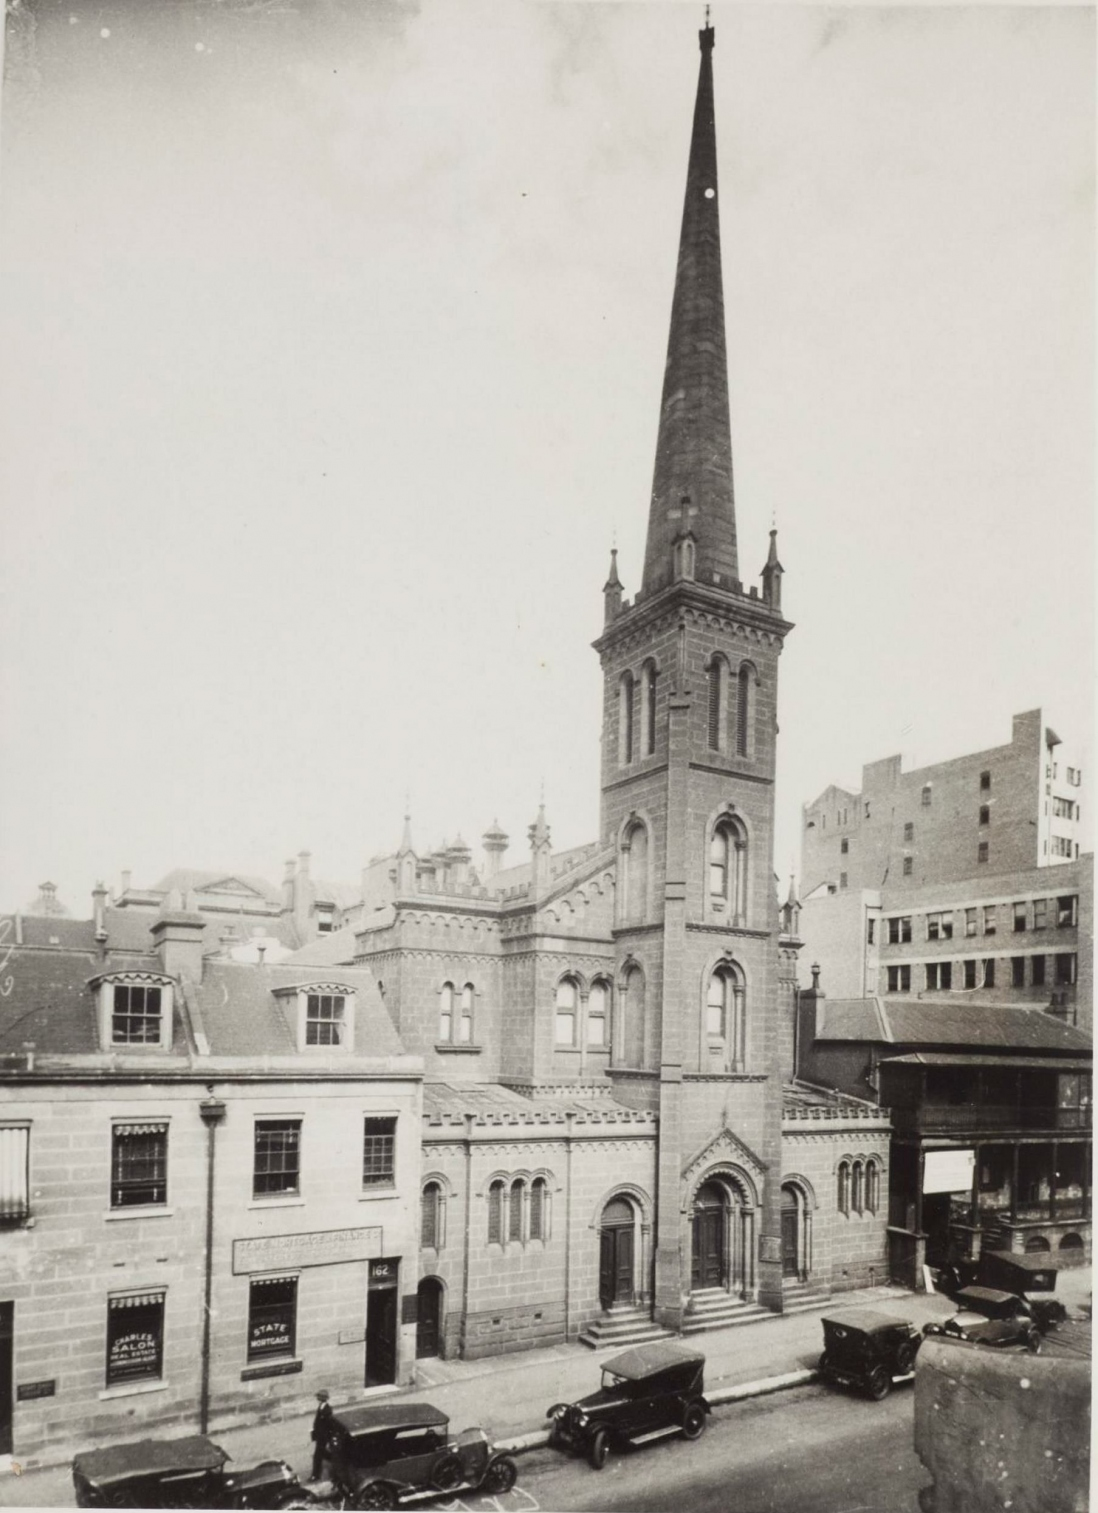 B&W image of a church with steeple, several vehicles parked on the street in front.